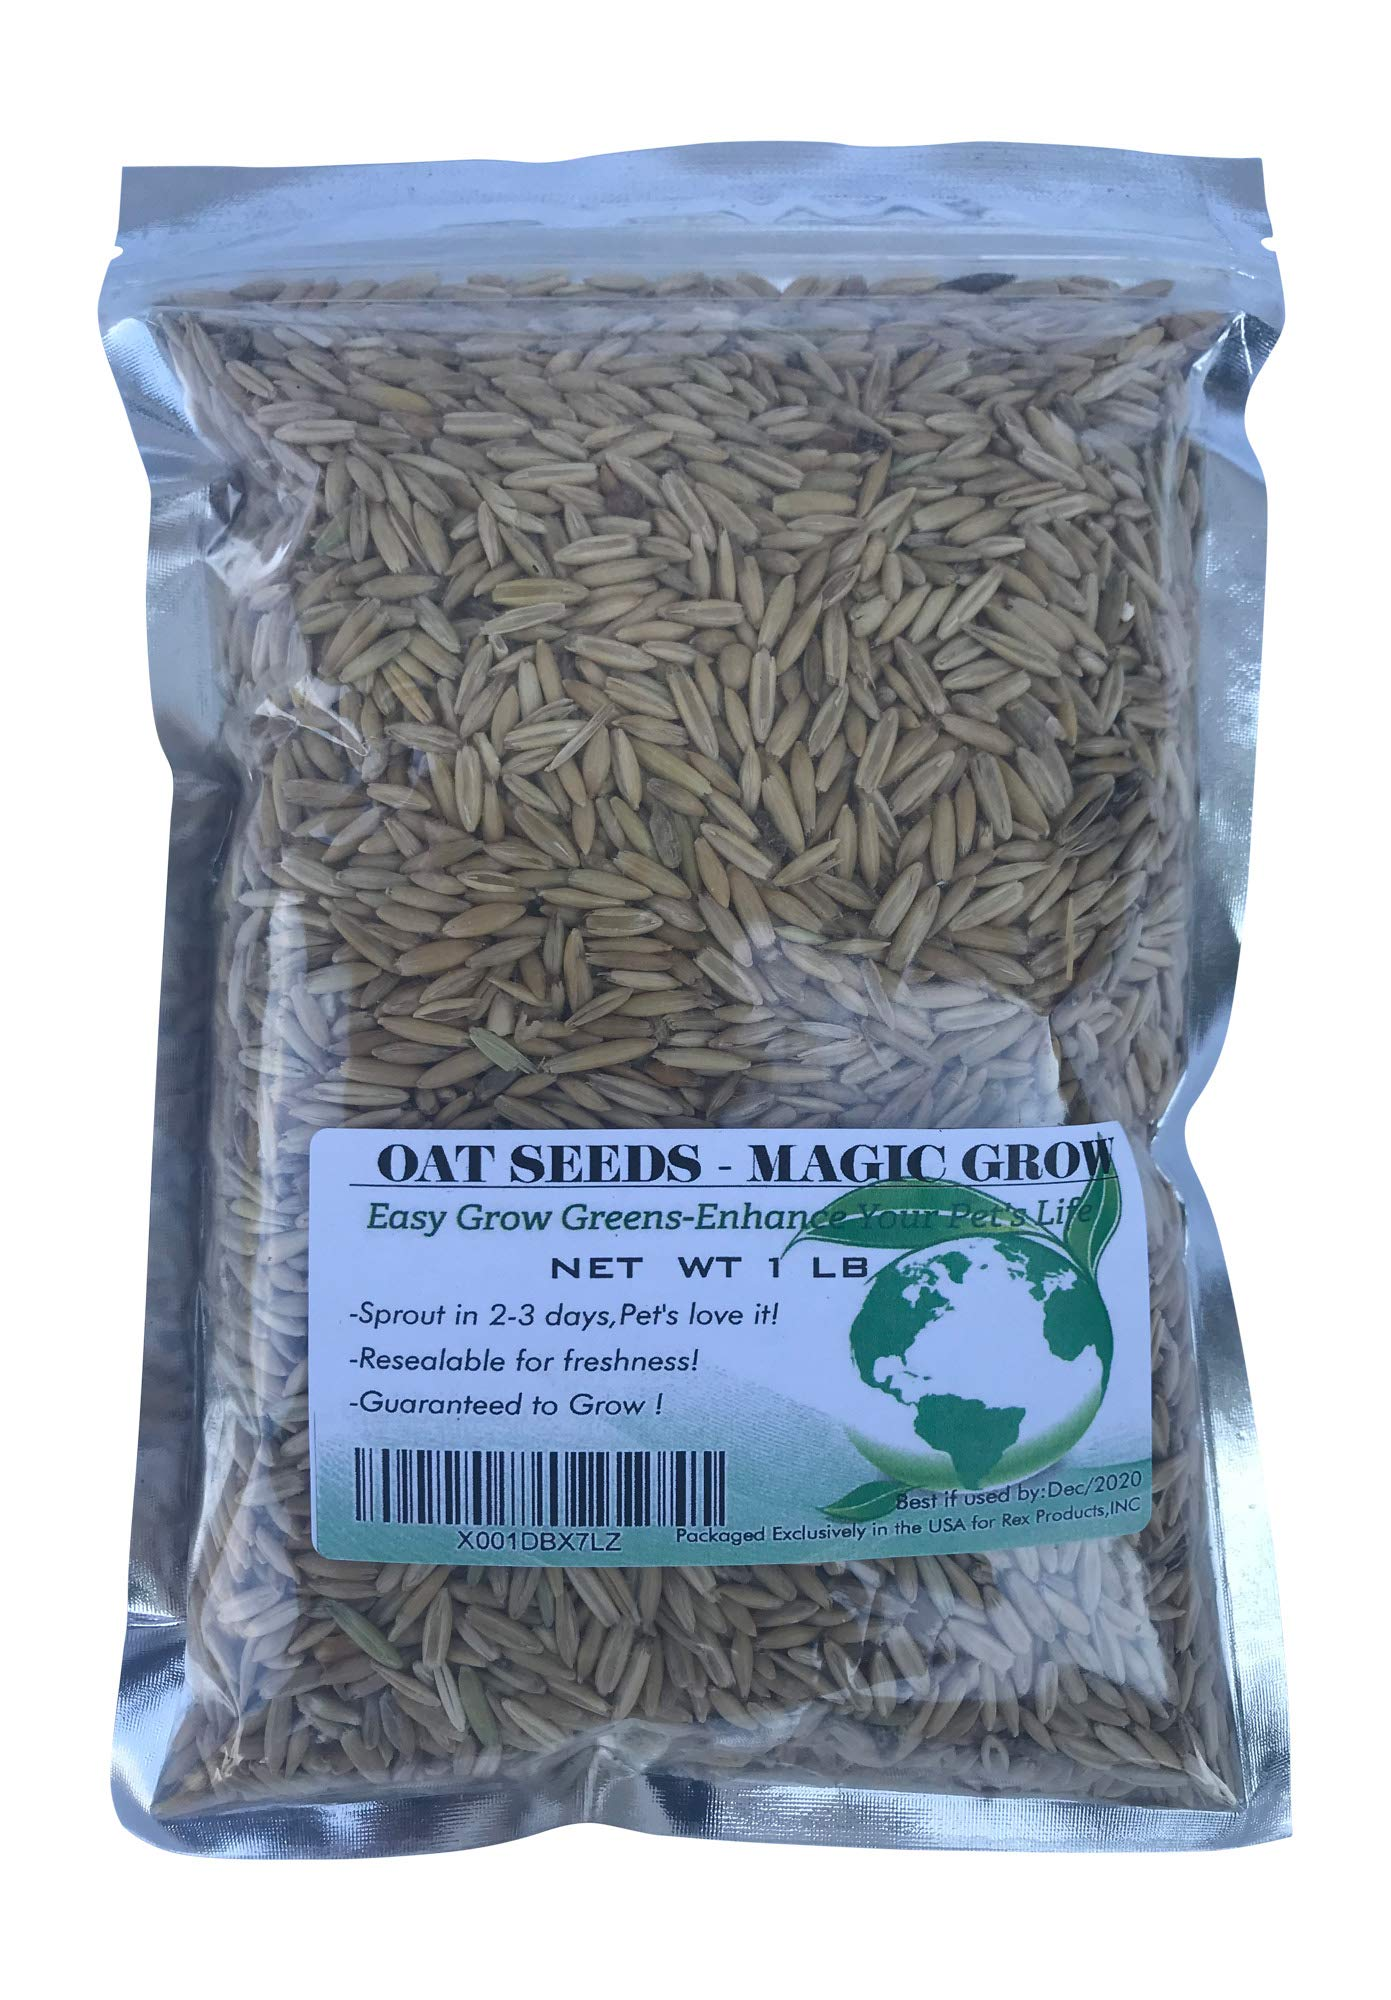 Oat Grass Seeds 1 Lb (3000+ Seeds)- Cat,Dog,Pets- Oat Grass Seeds